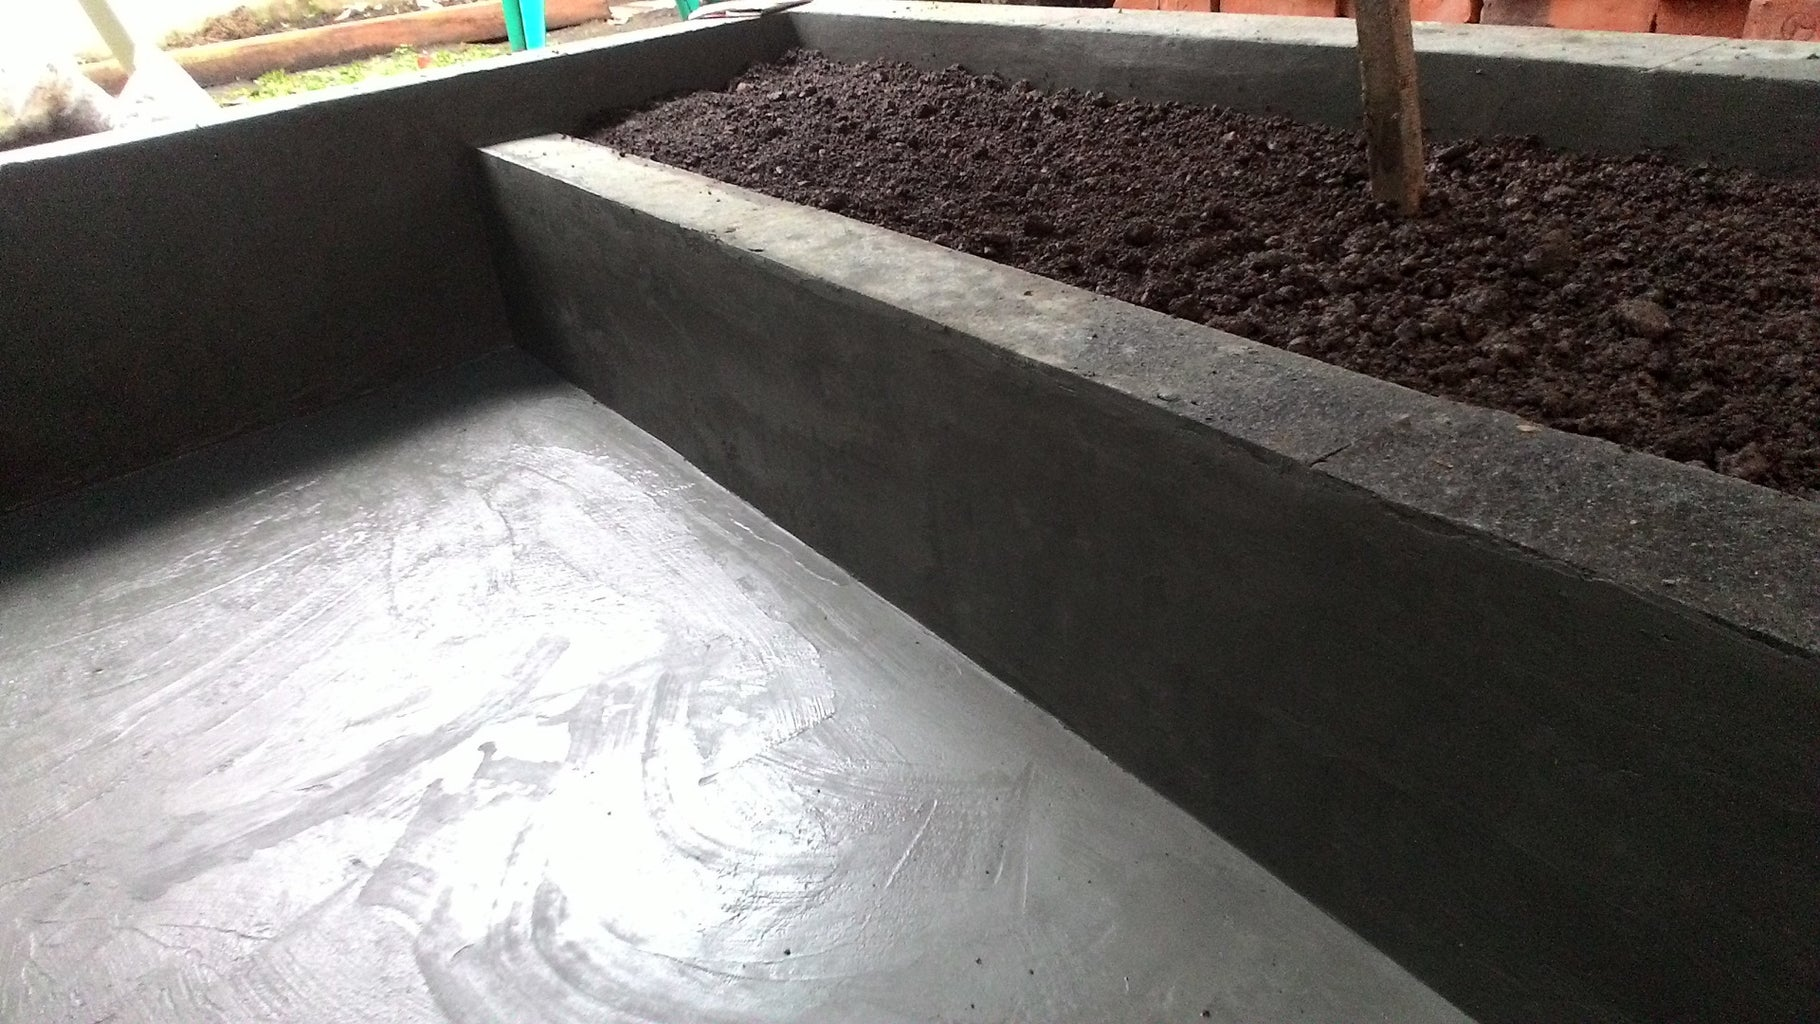 Covering the Brick